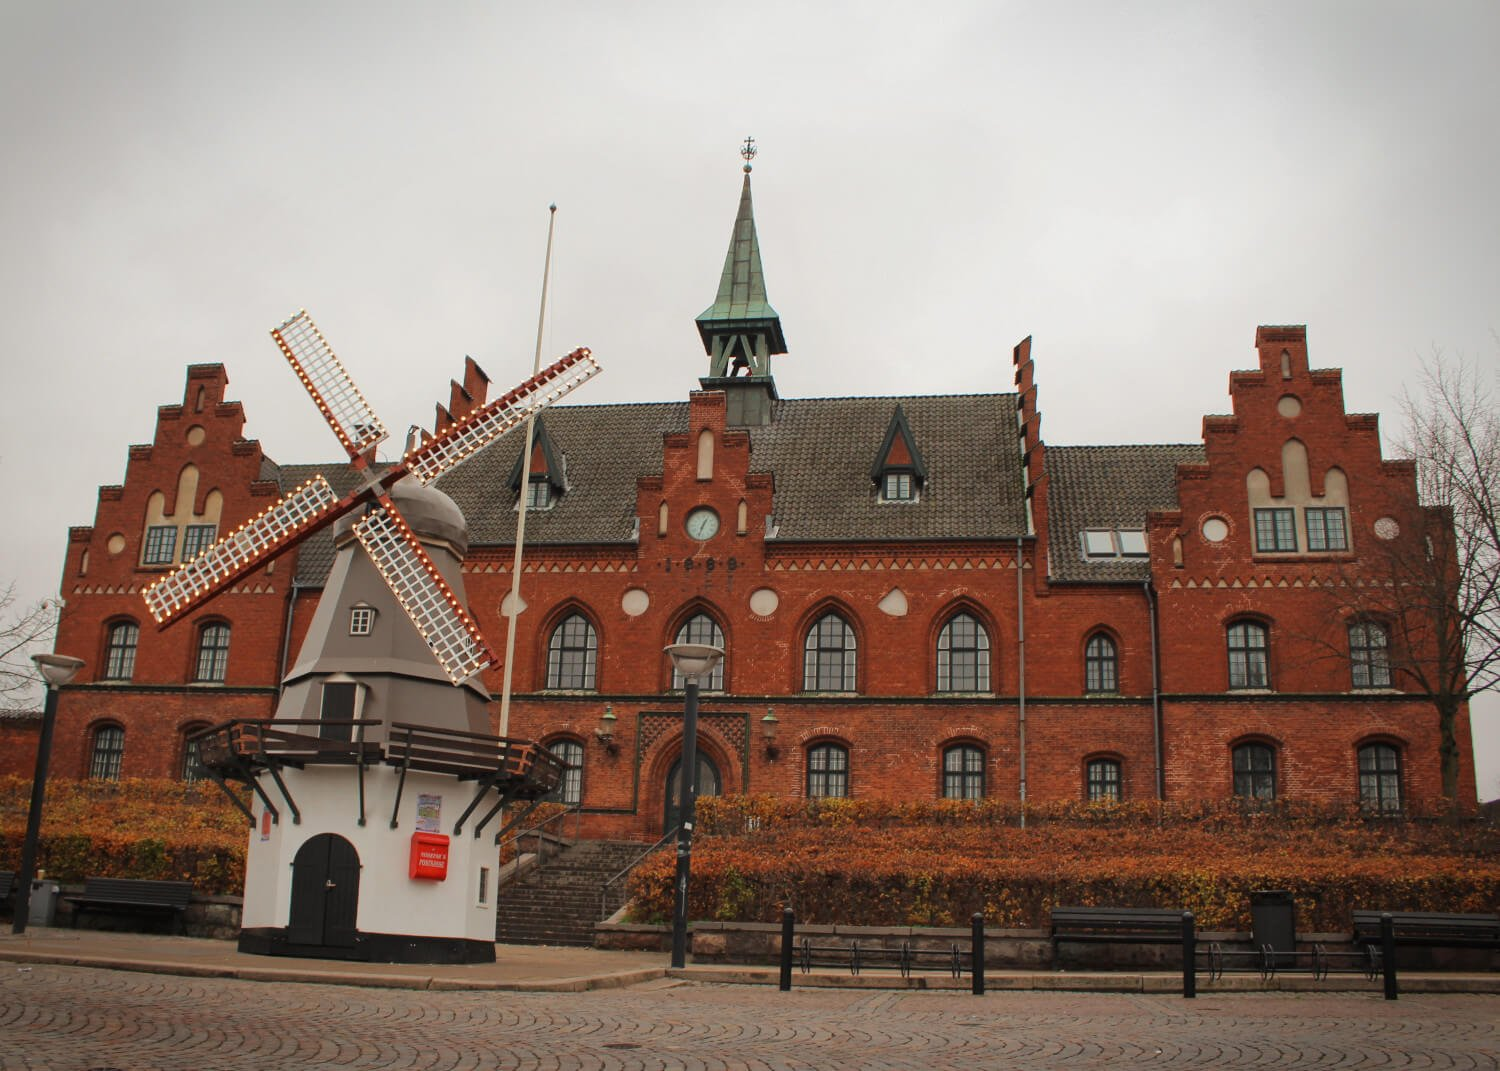 The adorable tiny windmill that greeted us upon arrival in Hillerød, home of Frederiksborg Castle, outside of Copenhagen Denmark.